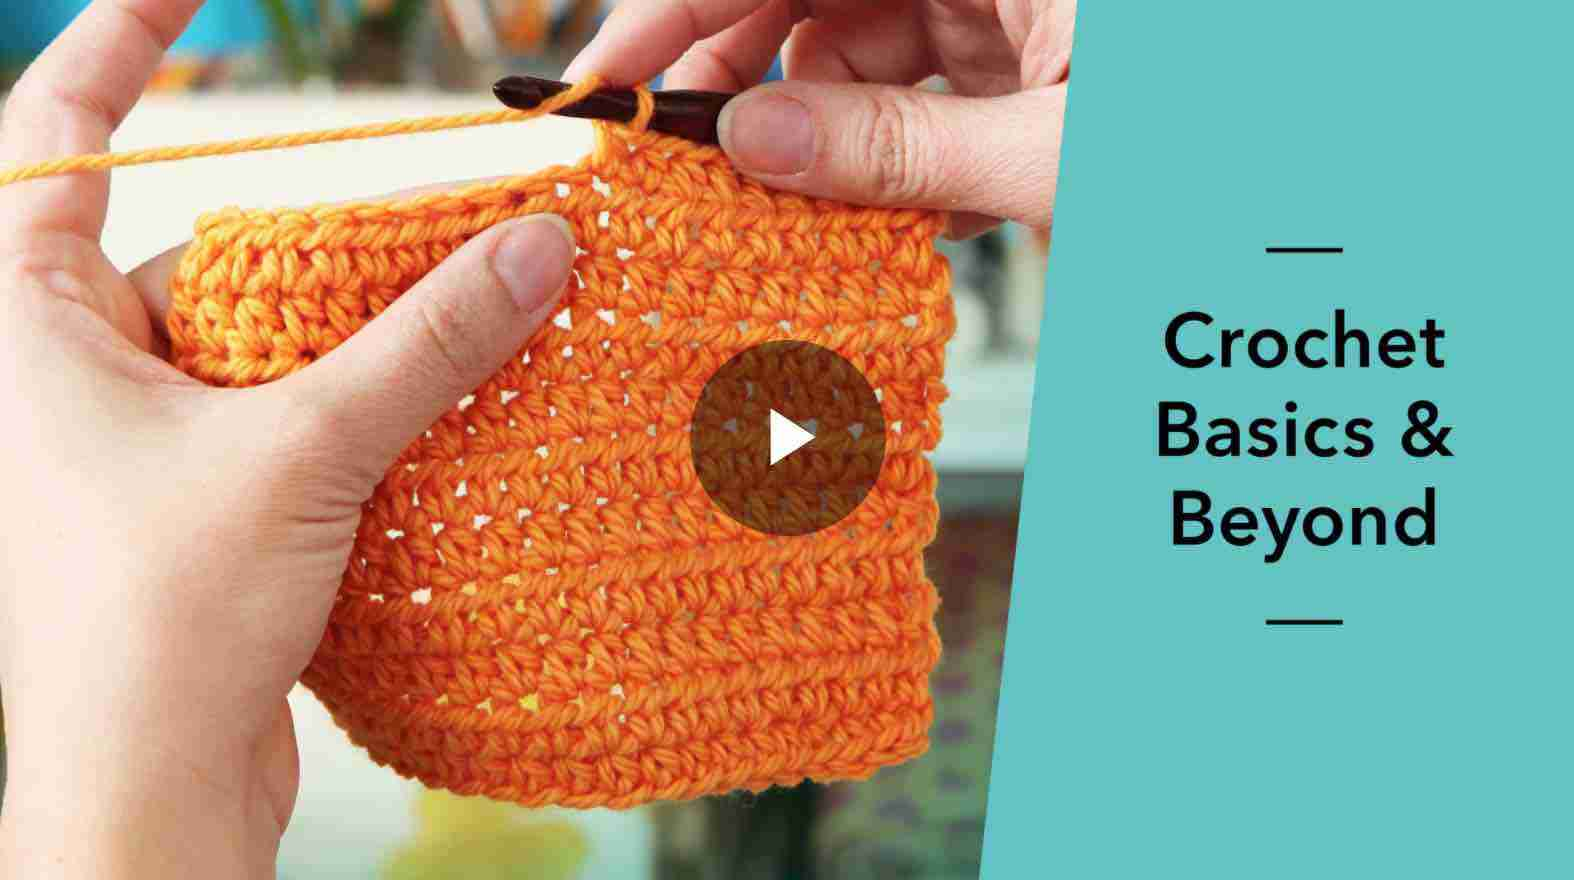 Crochet Basics & Beyond Course Craftsy Start Crochet